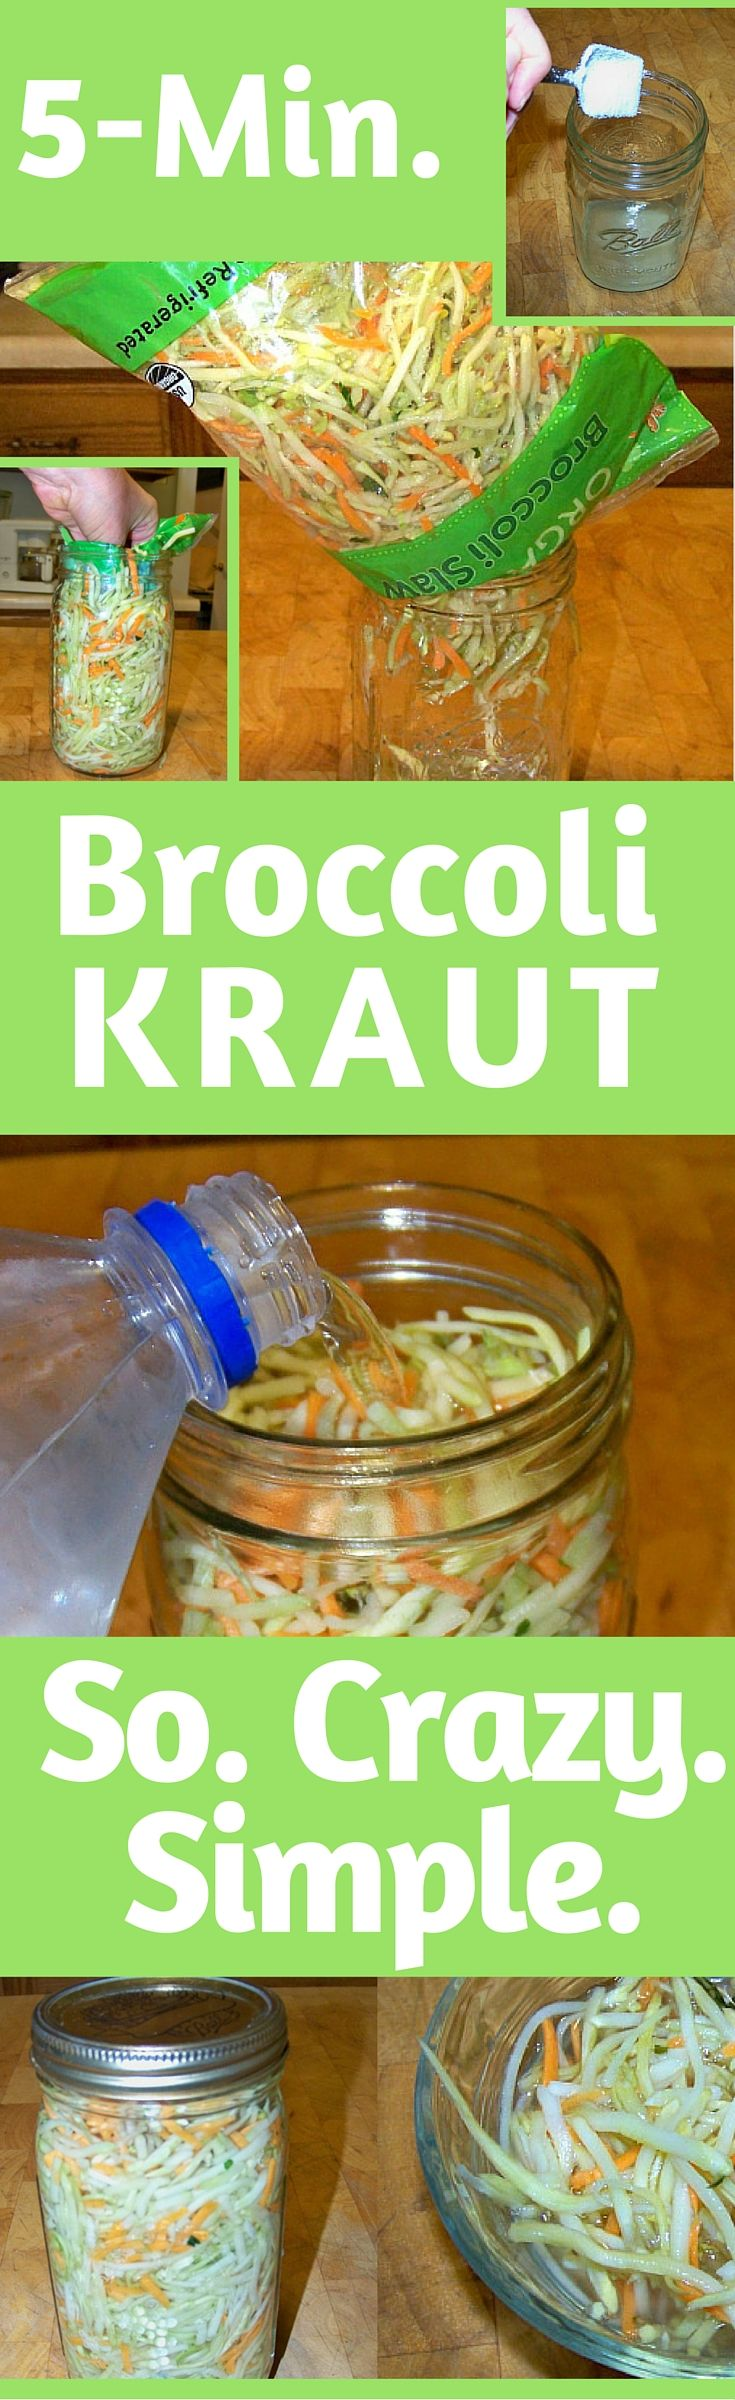 Fermented foods help heal the digestive track by providing natural, healthy probiotics. God has designed food to be our source of nourishment. Supplements will never substitute good old-fashioned wholesome food designed by God. This recipe makes it so easy to get started fermenting vegetables.